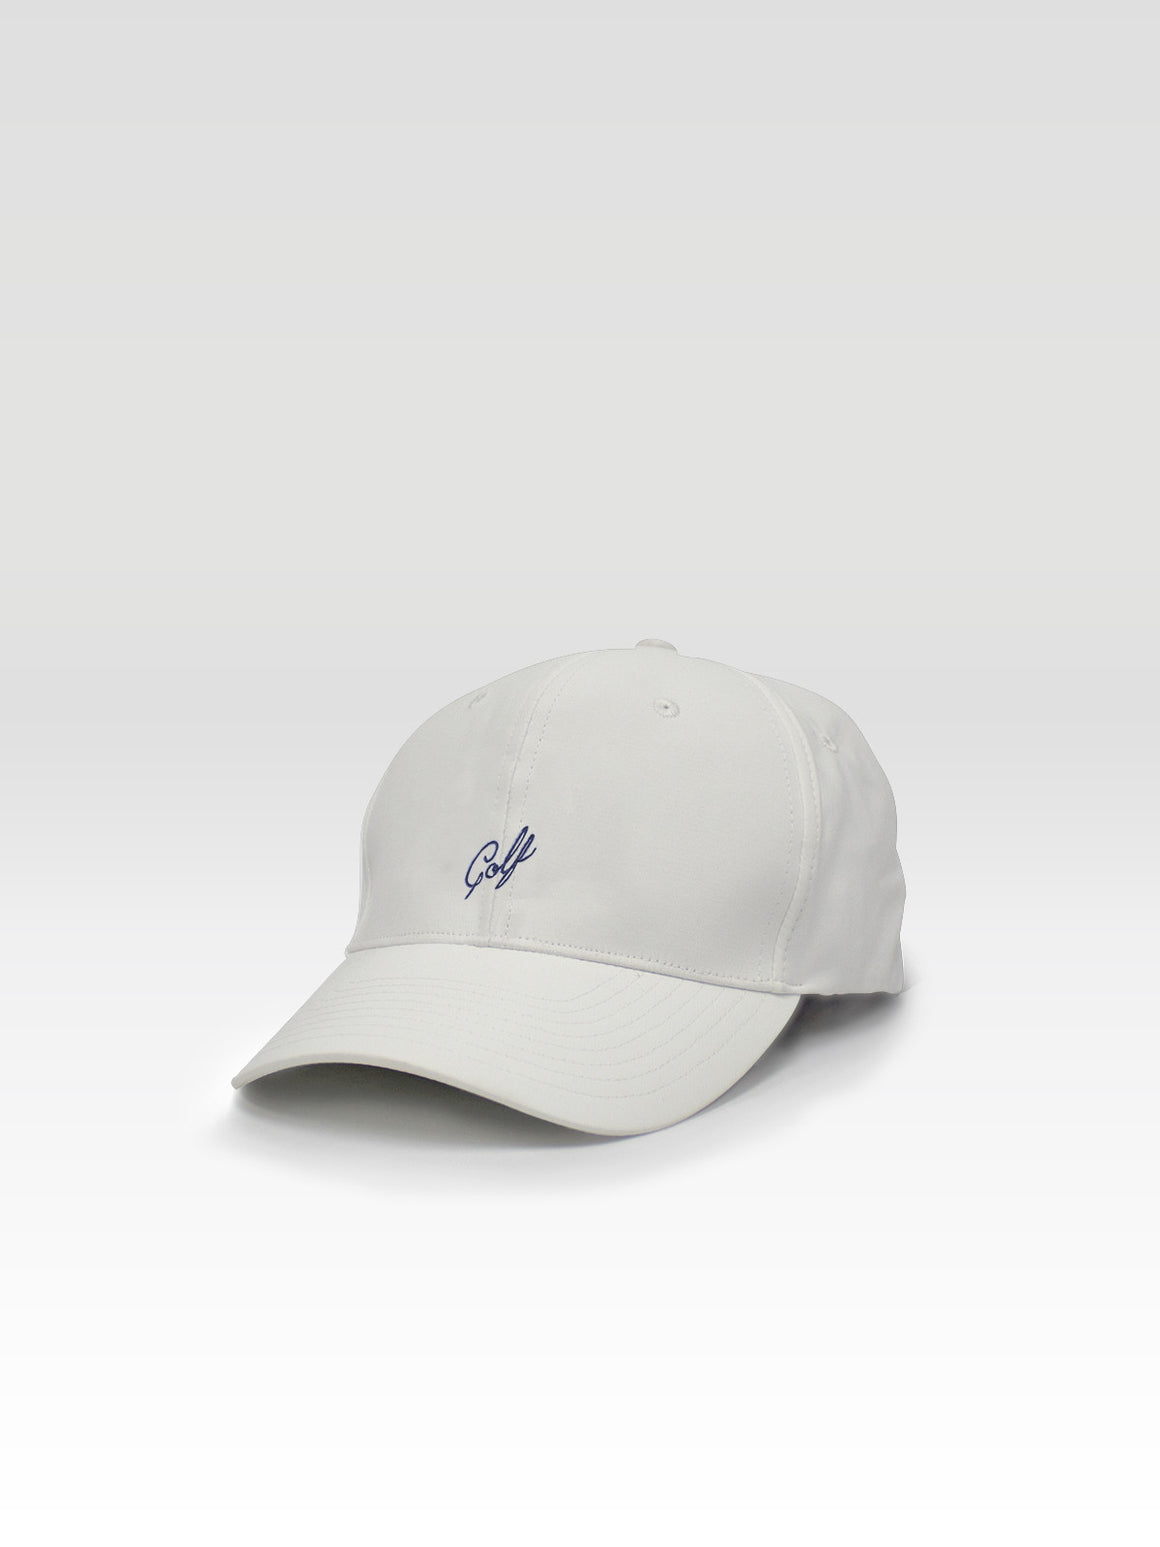 Golf Dad Hat - White (Navy)